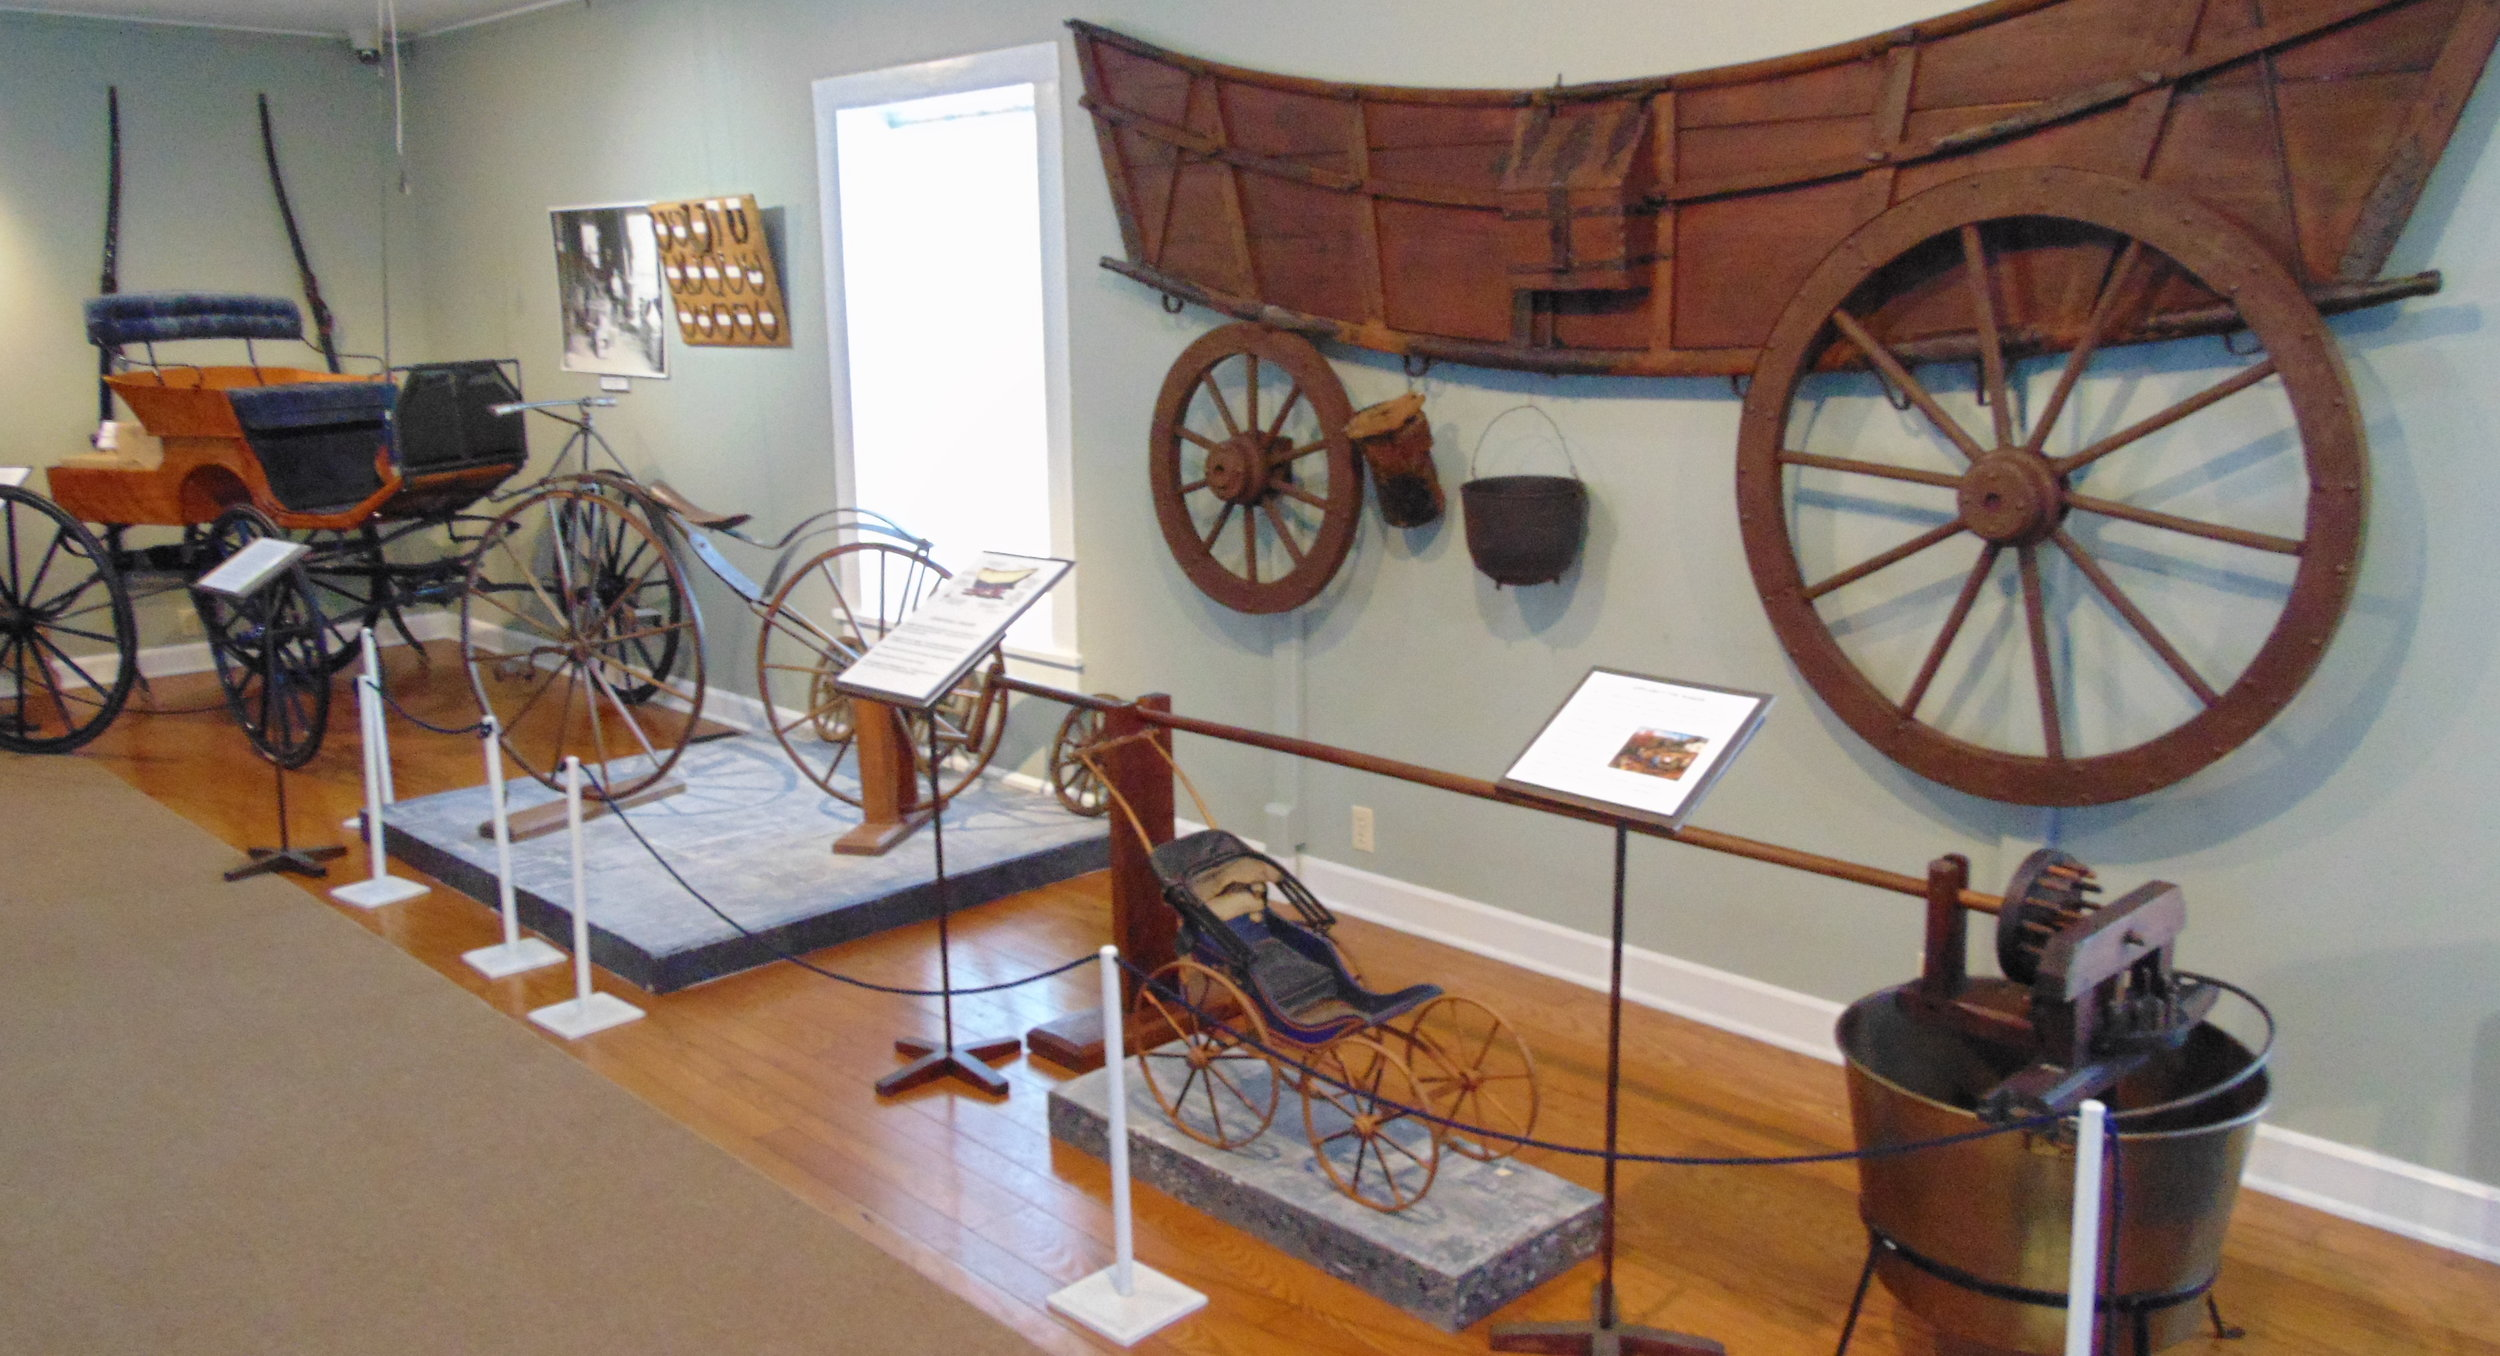 The Museum's main room is devoted to transportation, from buggies to bicycles.